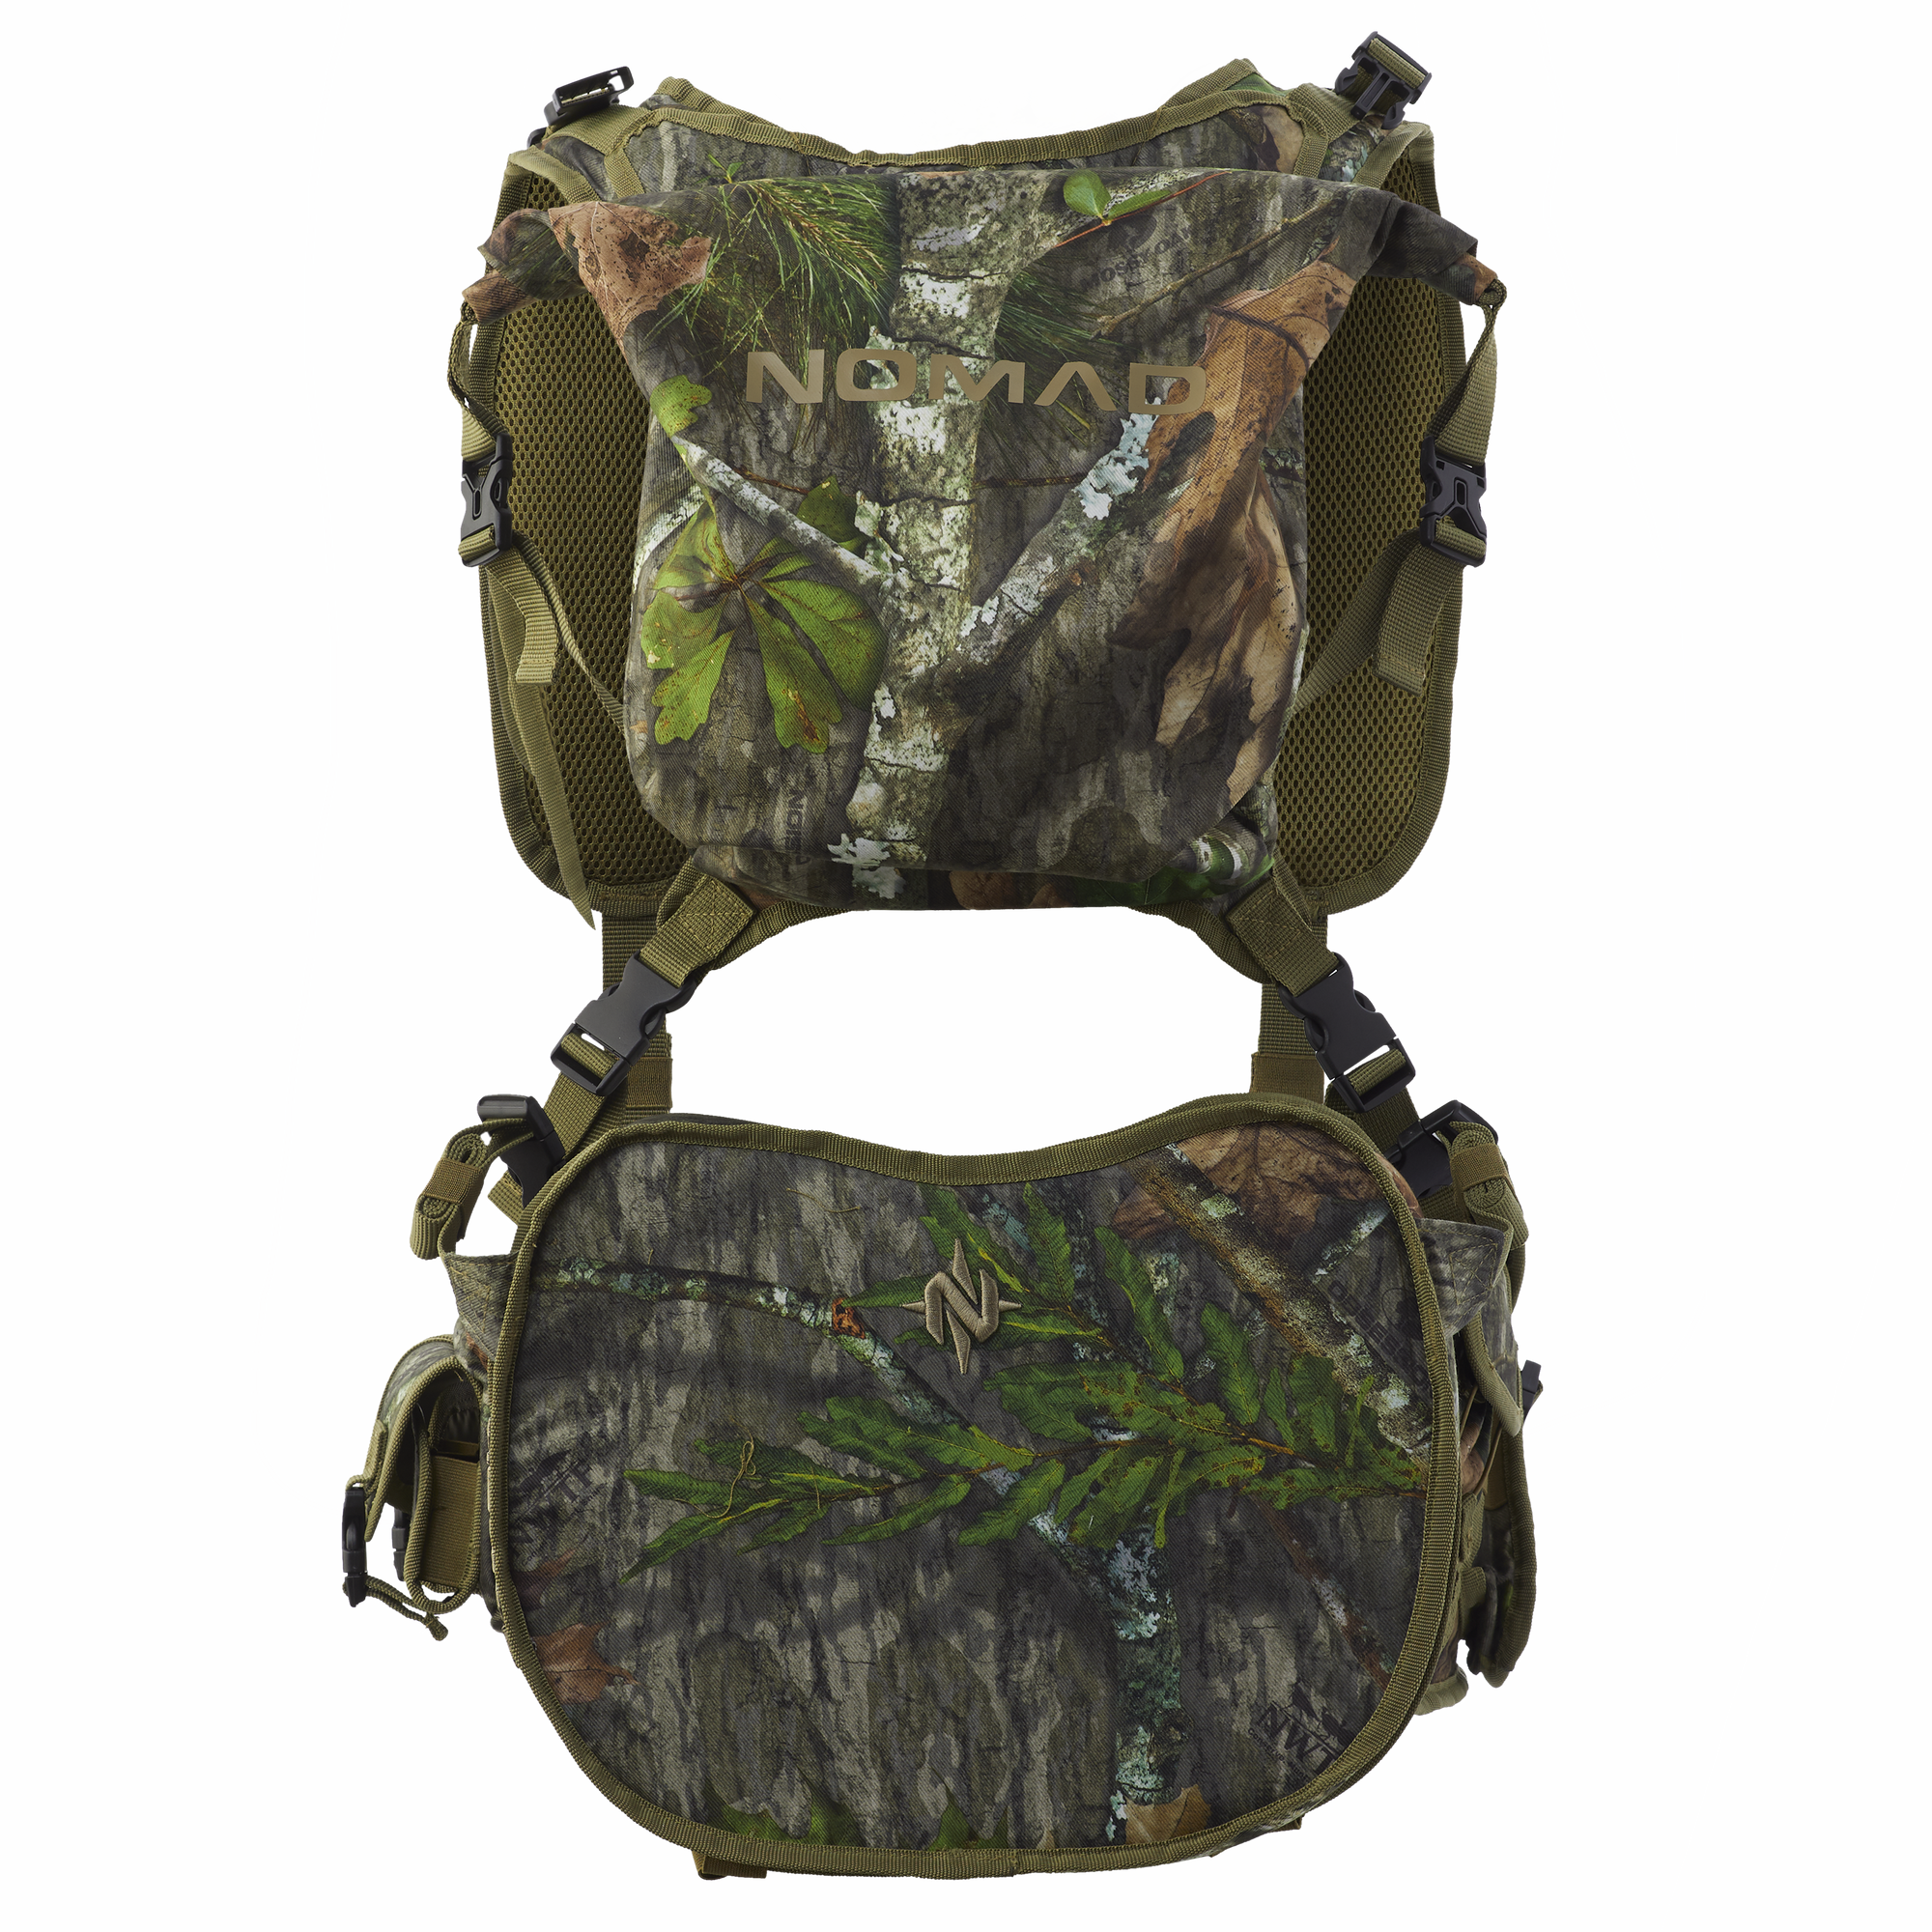 Two New Nomad Premium Turkey Vests Intocied to NWTF Collection